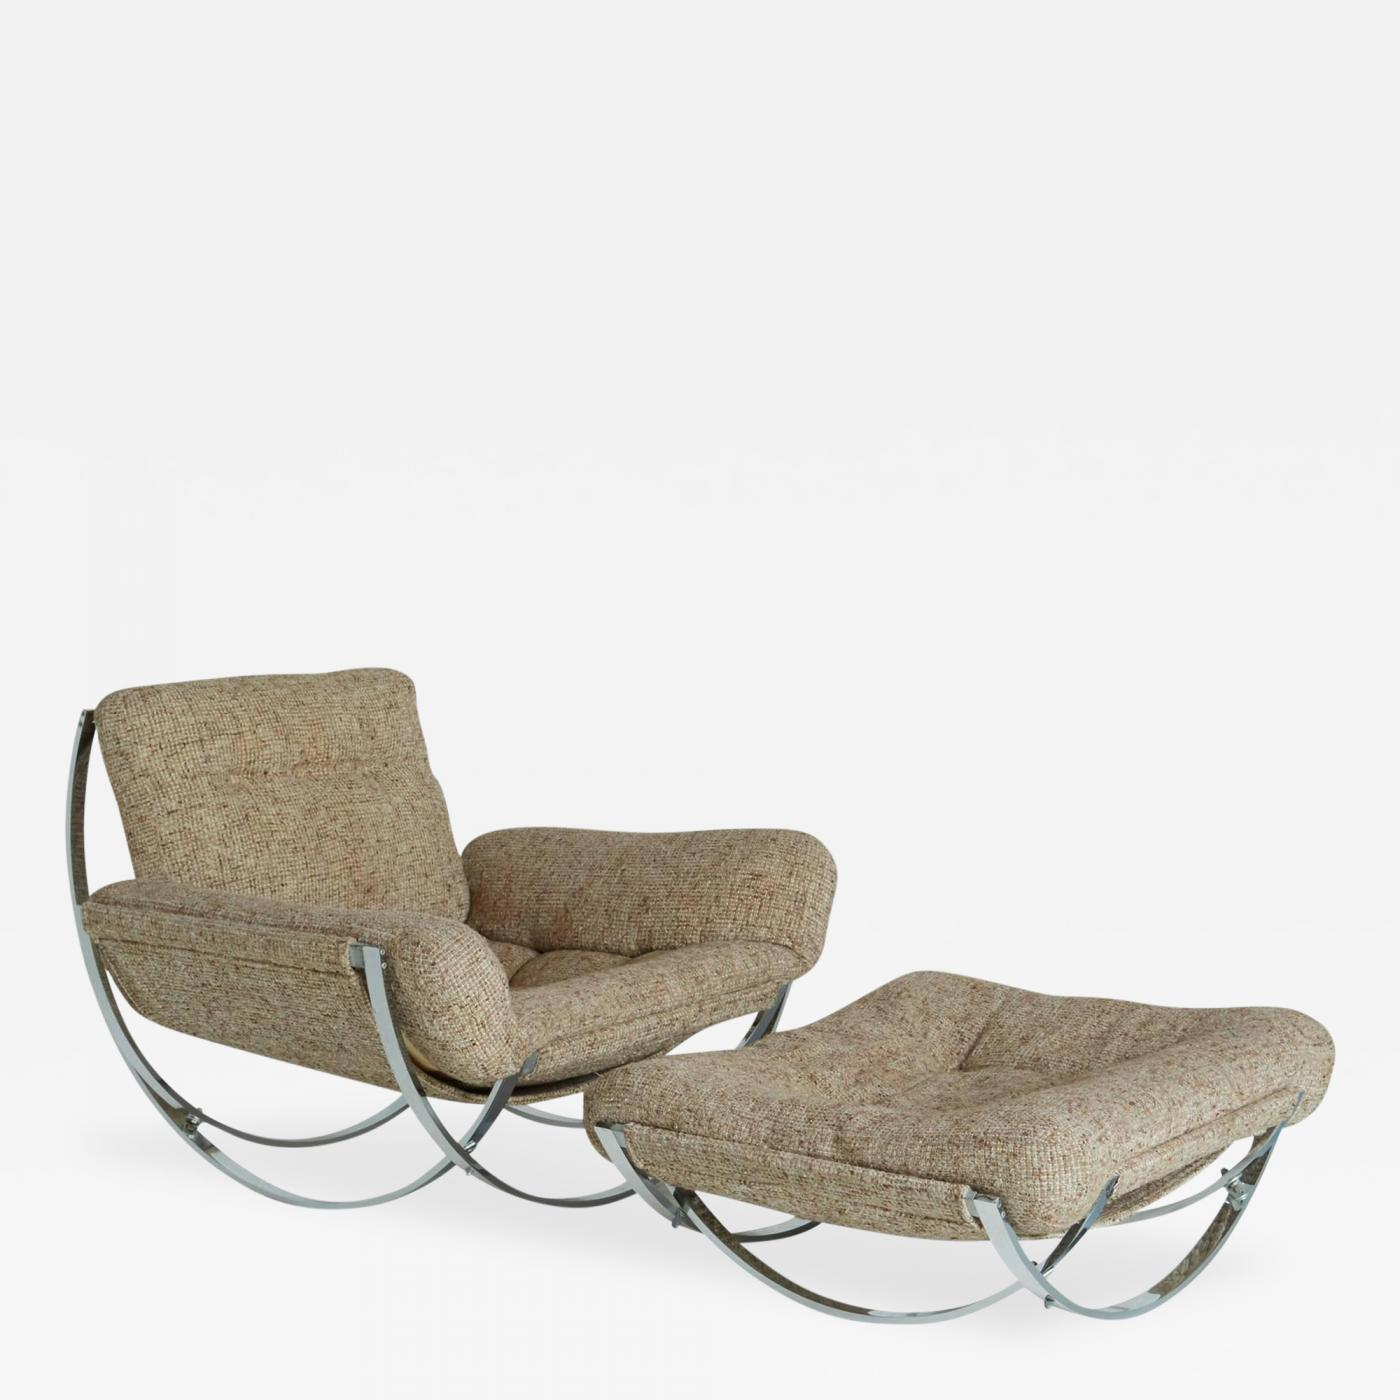 Charles Stendig Tan Wool Sculptural Lounge Chair and Ottoman